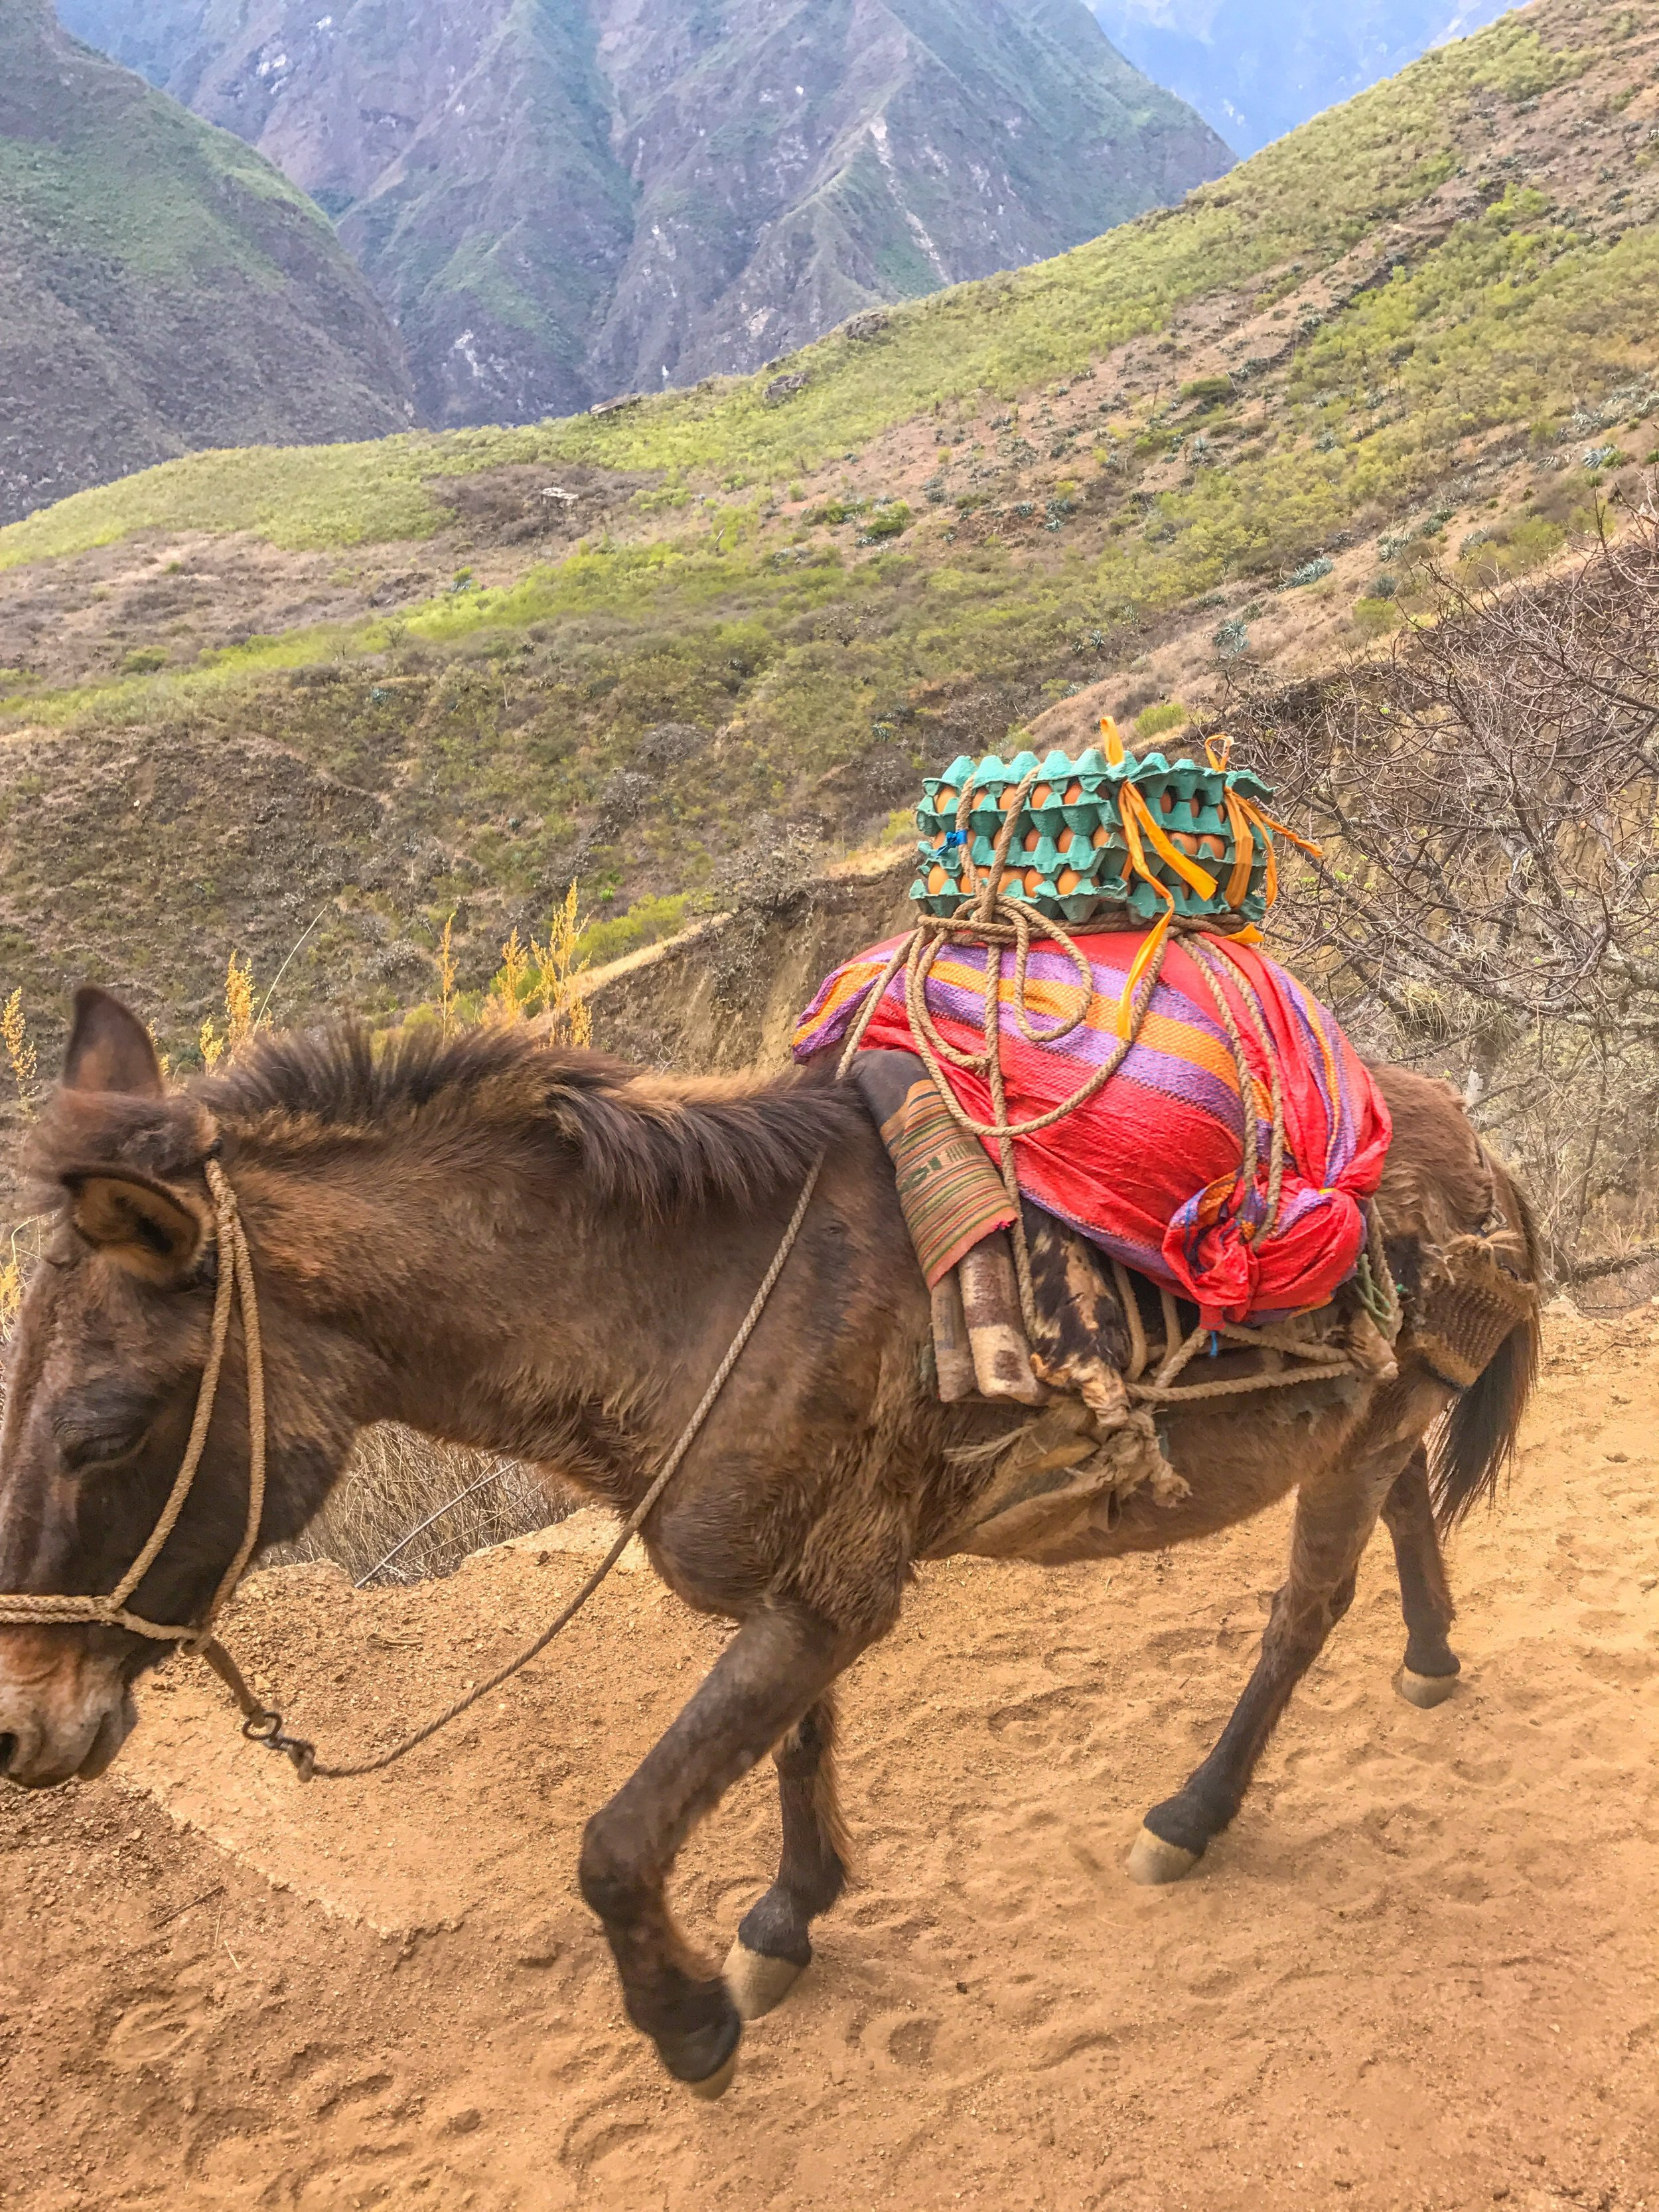 Egg delivery in the Andes mountains!